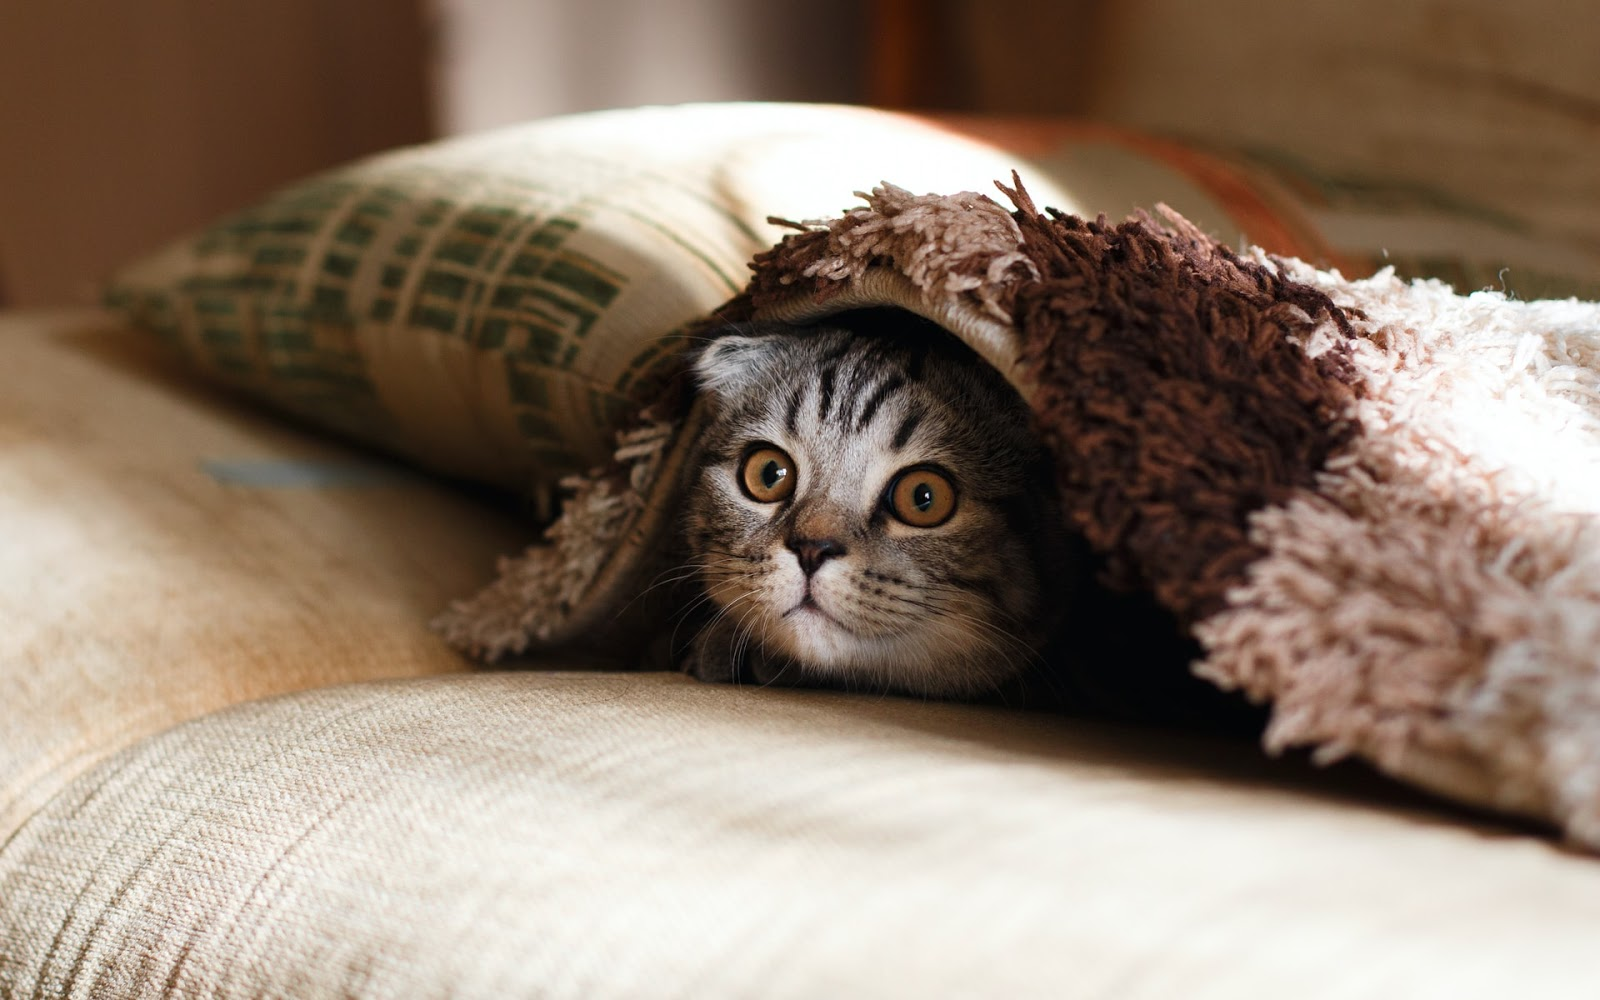 A grey cat poking its head out from under a blanket